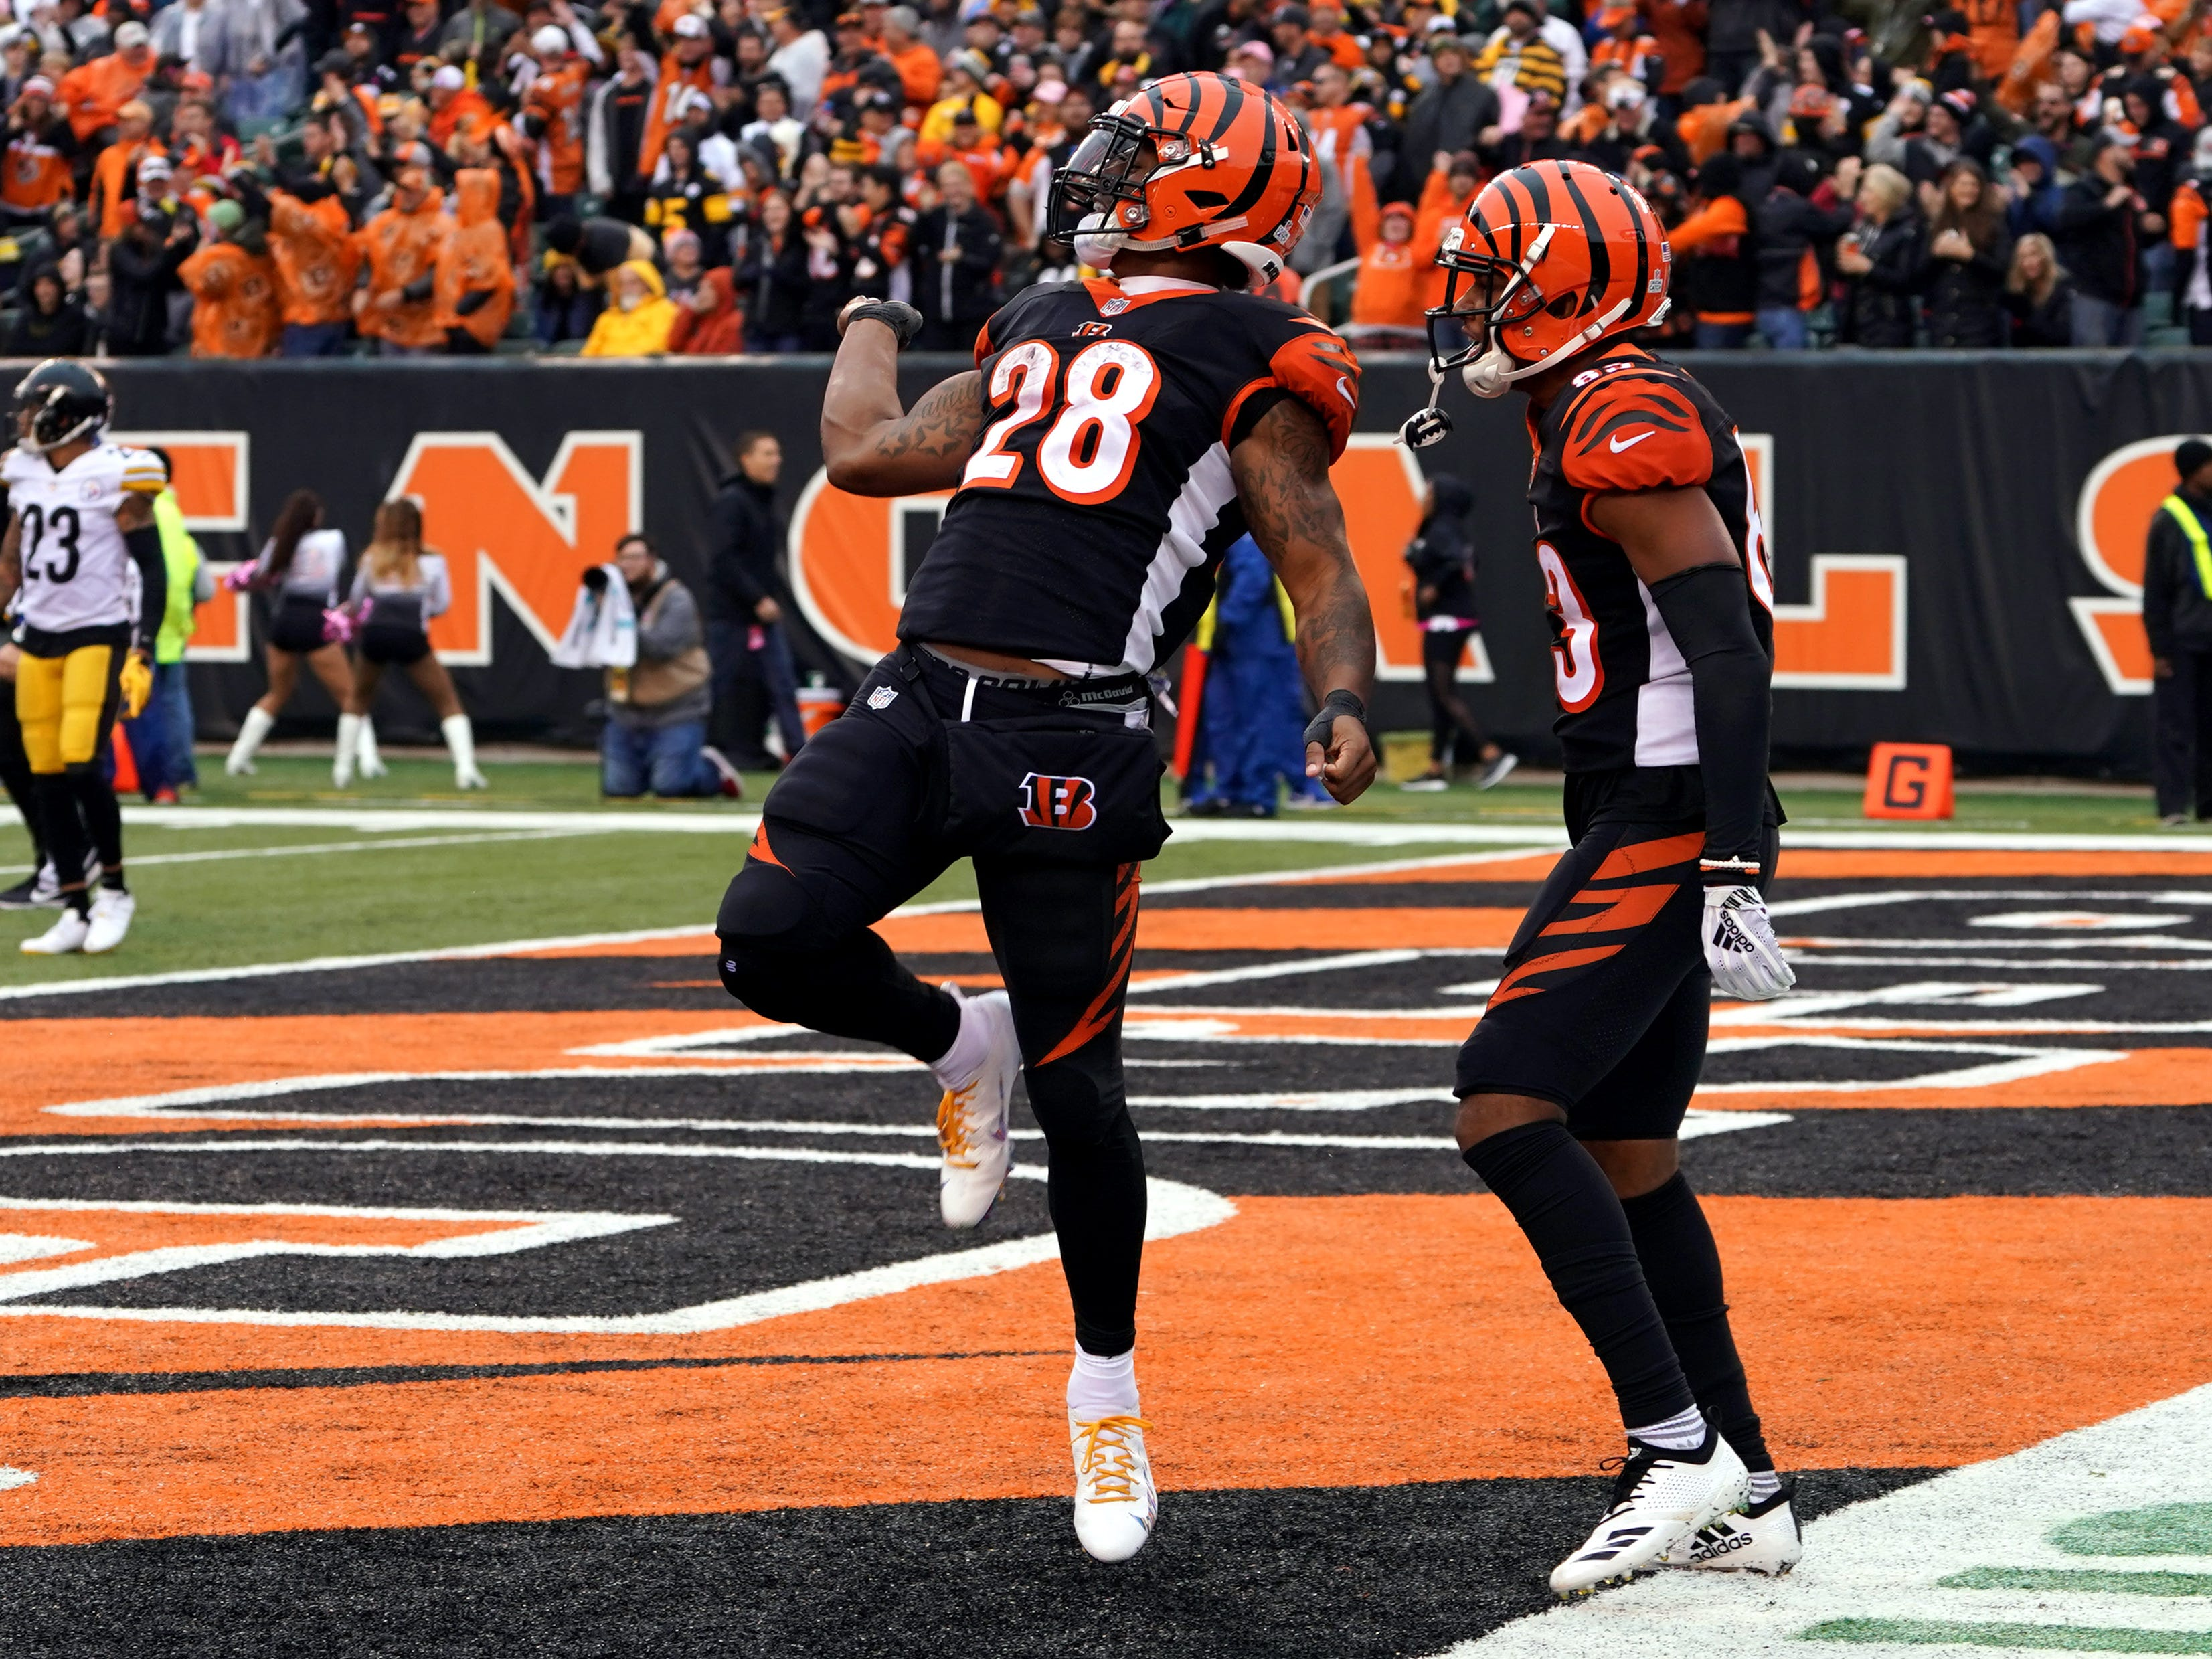 Cincinnati Bengals running back Joe Mixon reacts to scoring a touchdown with wide receiver Tyler Boyd (right) against the Pittsburgh Steelers in the second half at Paul Brown Stadium.